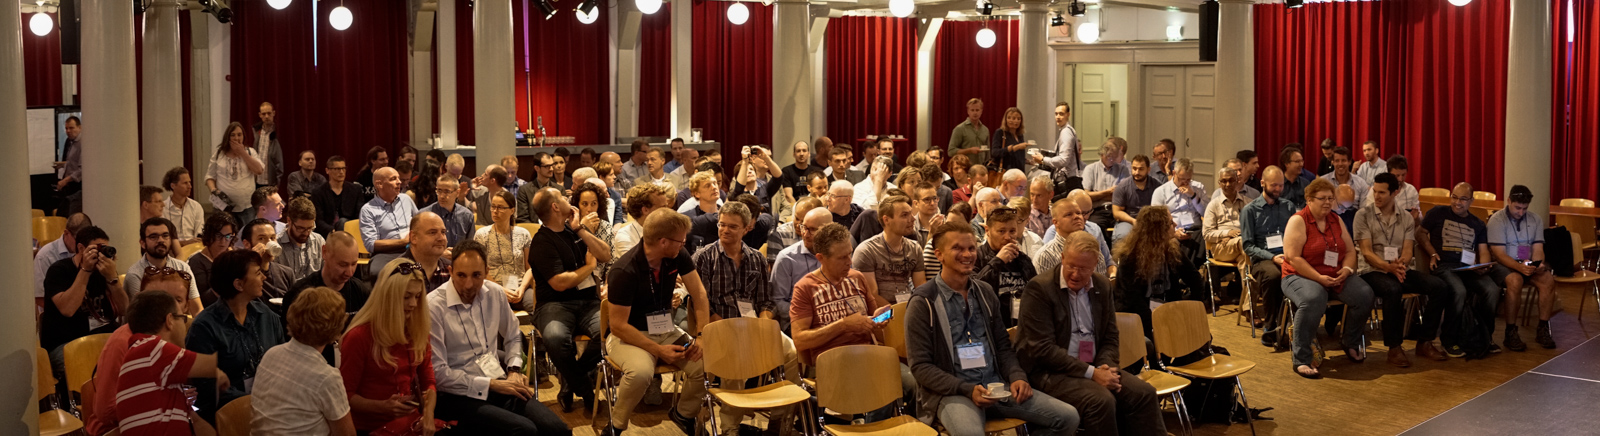 Waiting for LeSS16 to start